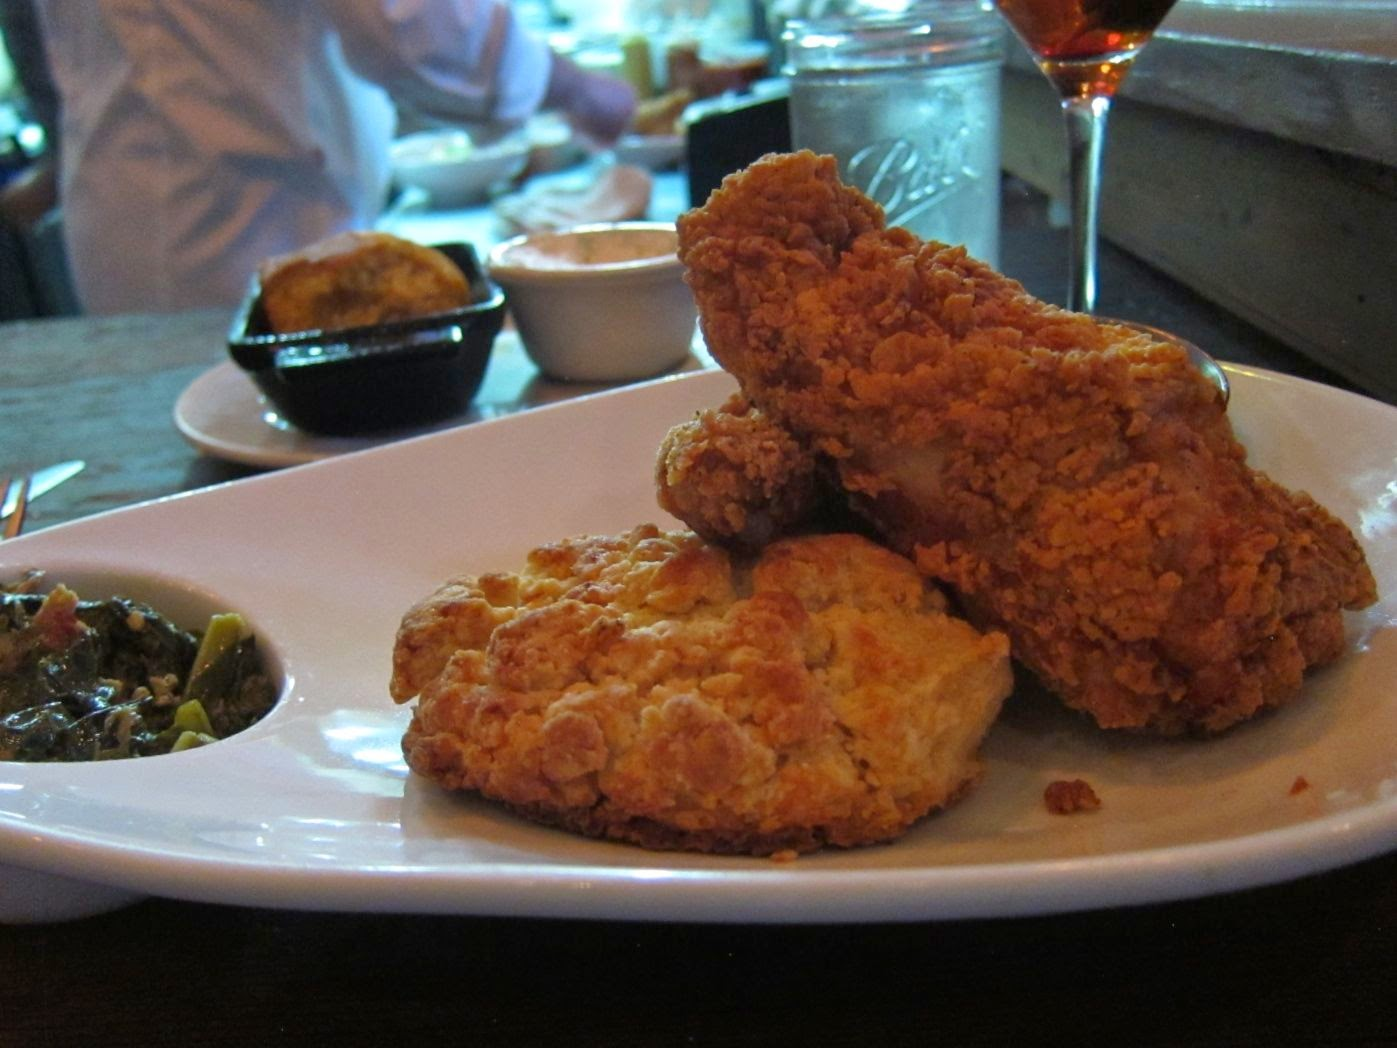 Fried chicken at Hops & Hominy, SF